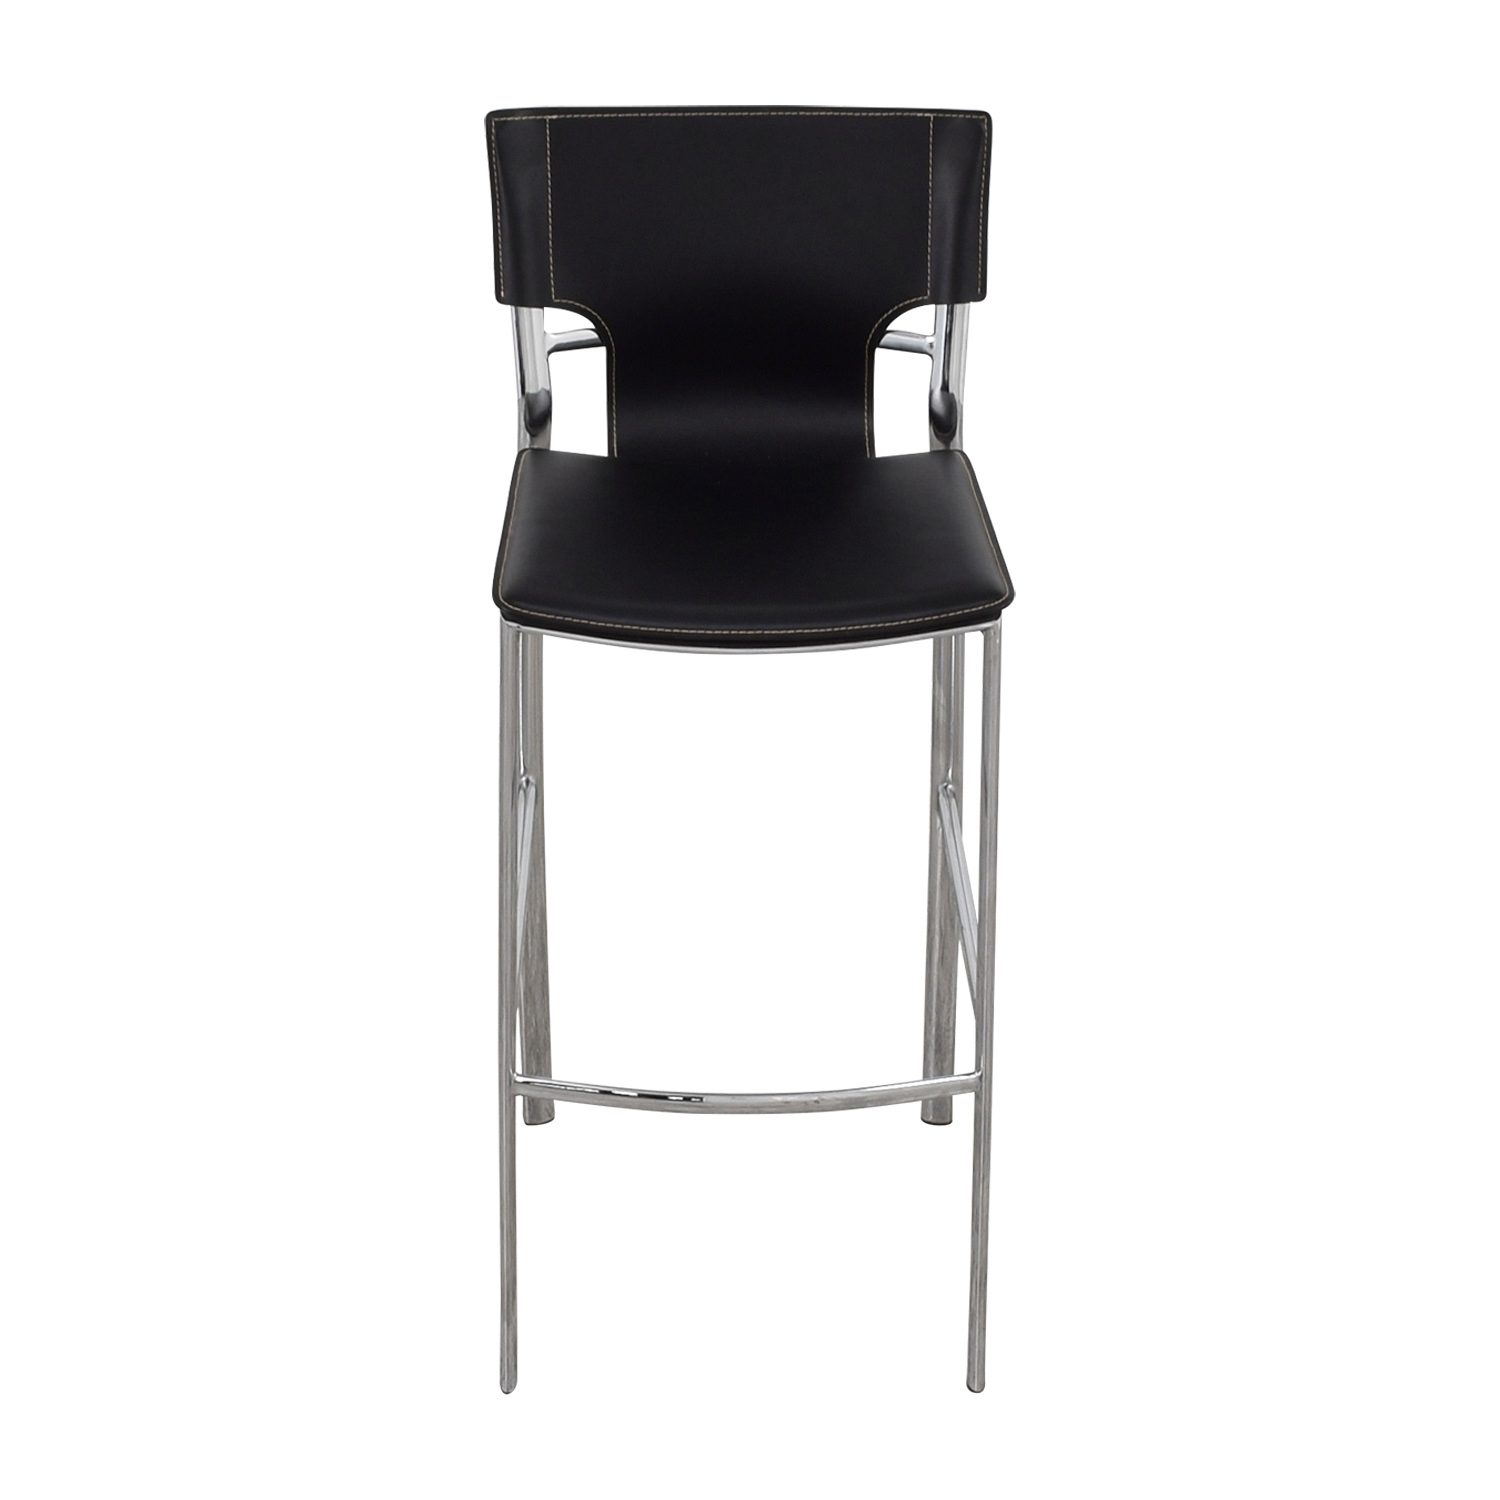 shop Modern Black Leatherette and Chrome Bar Chair Stools